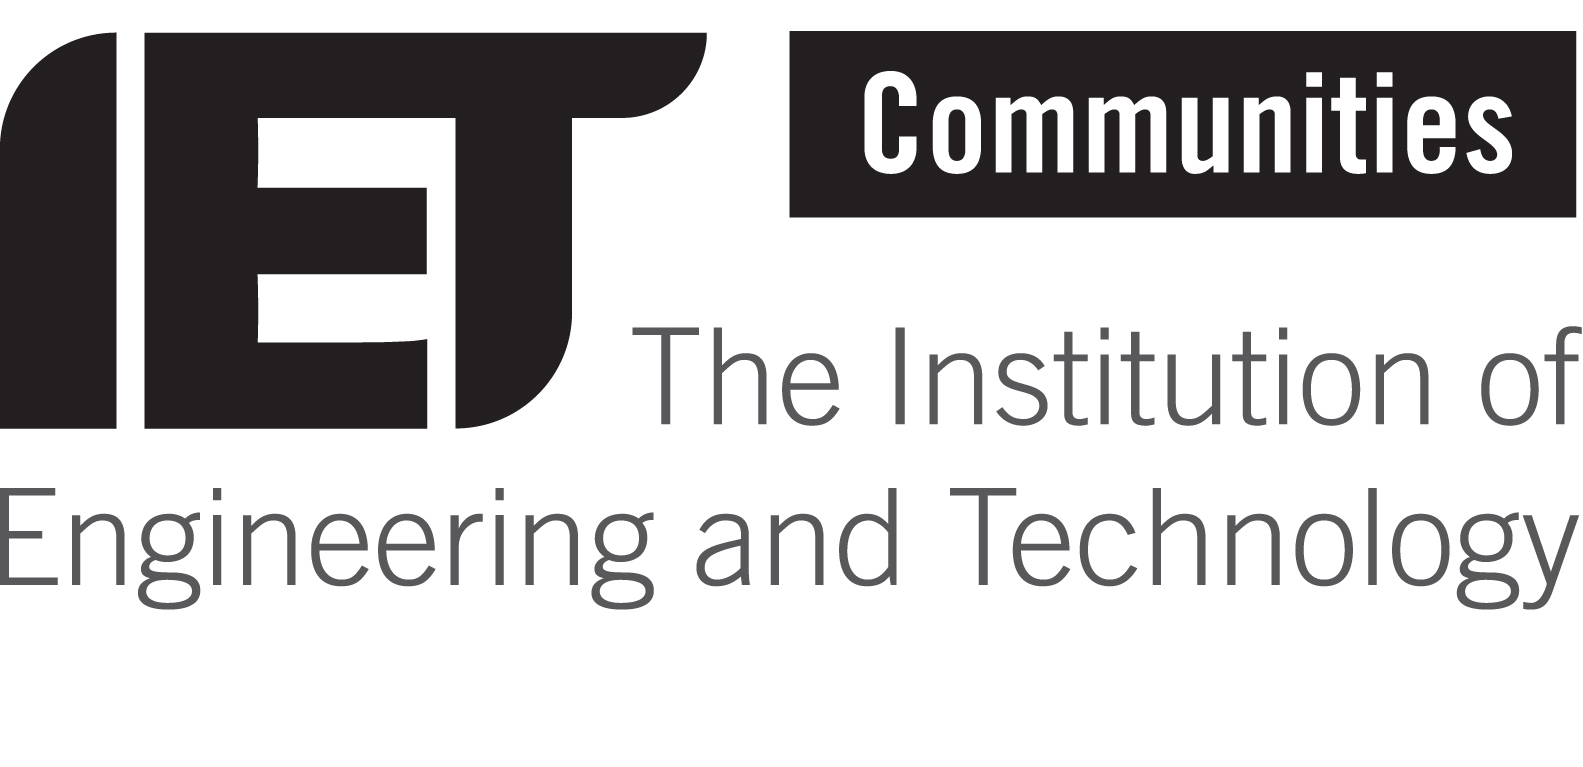 IET_-_Communities_logo.jpg